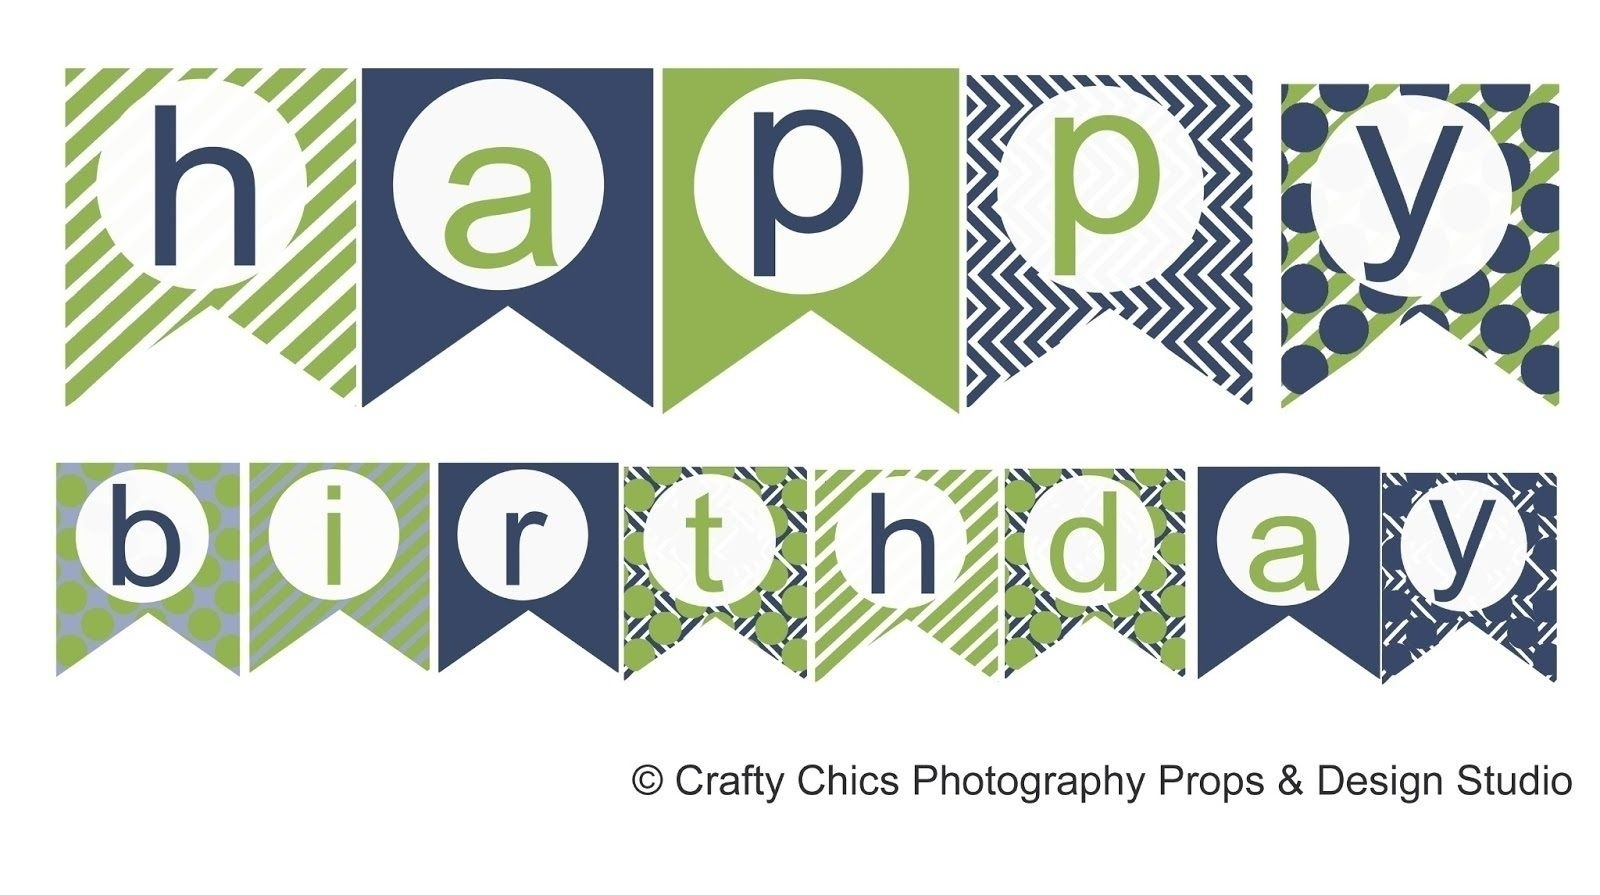 Happy Birthday Banner Template Printable | World Of Label - Free Printable Happy Birthday Banner Templates